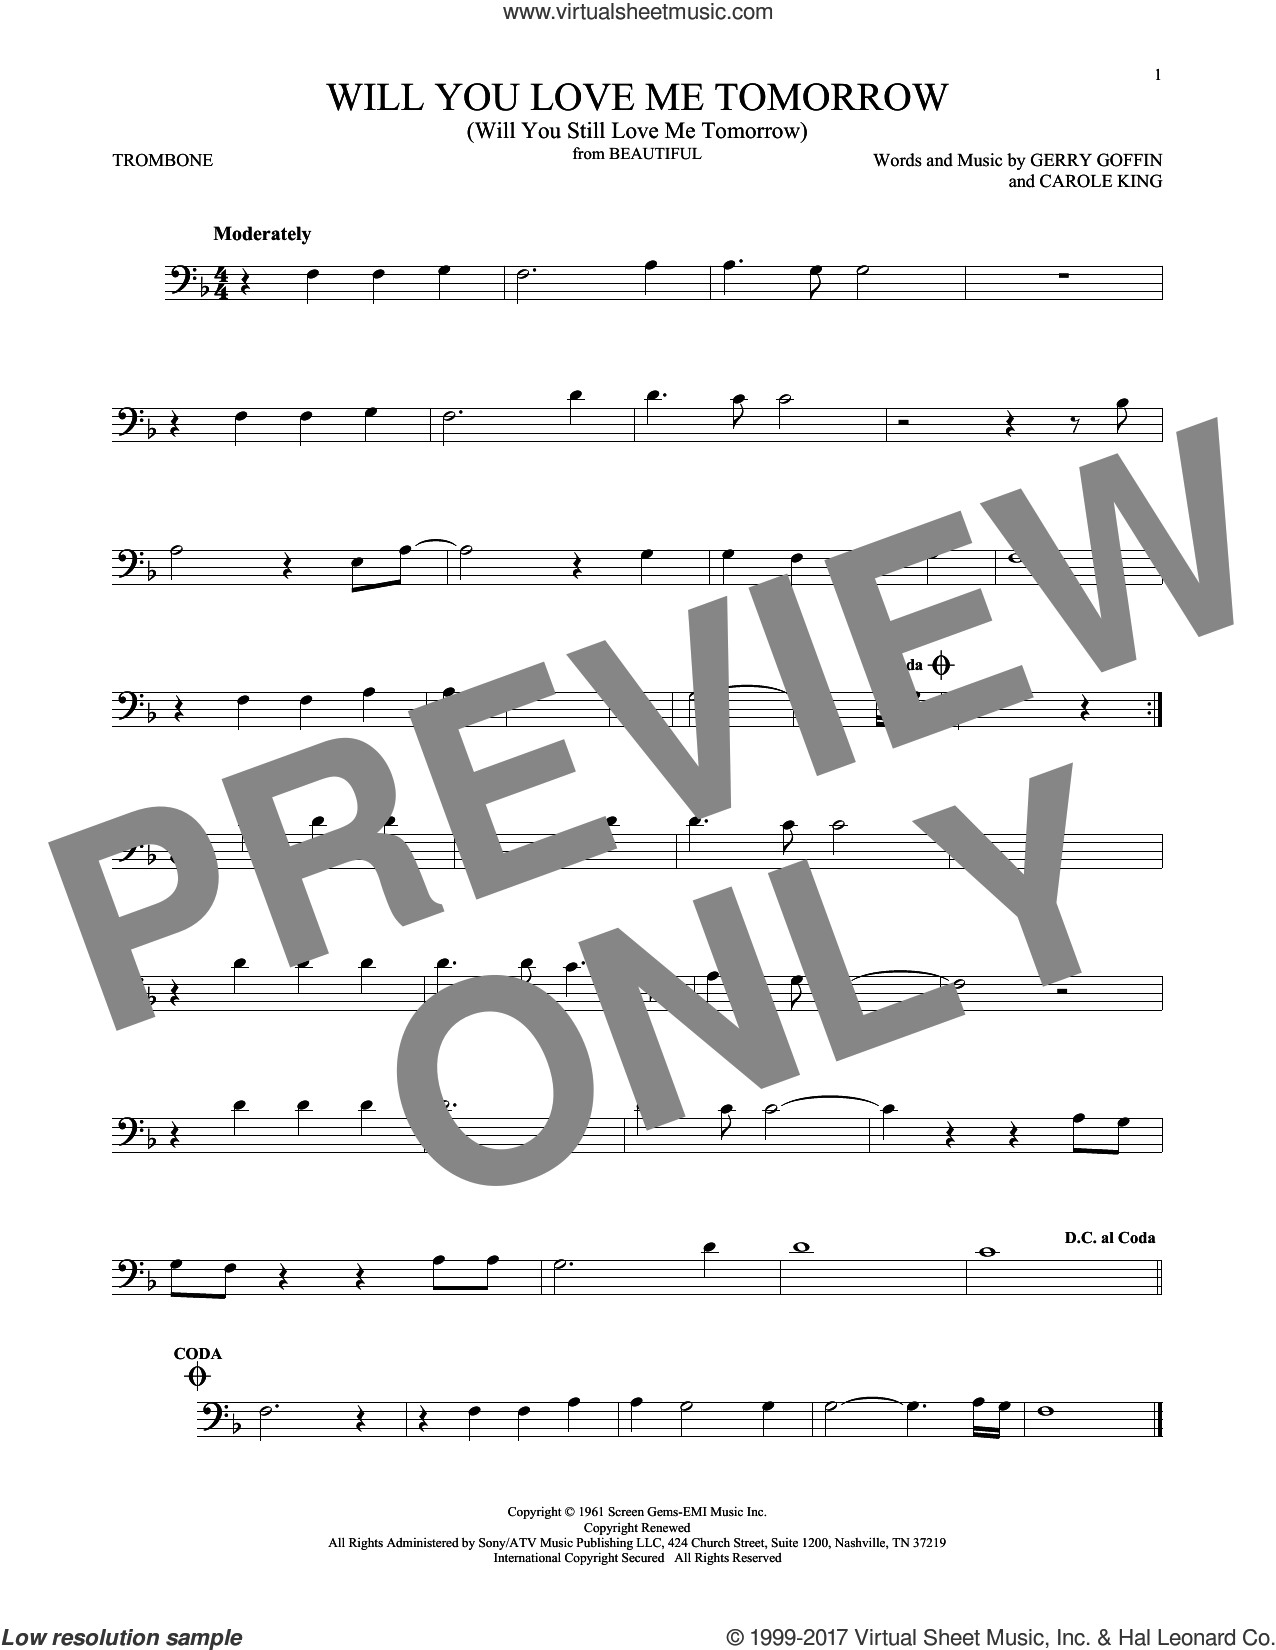 Will You Love Me Tomorrow (Will You Still Love Me Tomorrow) sheet music for trombone solo by The Shirelles, Carole King and Gerry Goffin, intermediate skill level